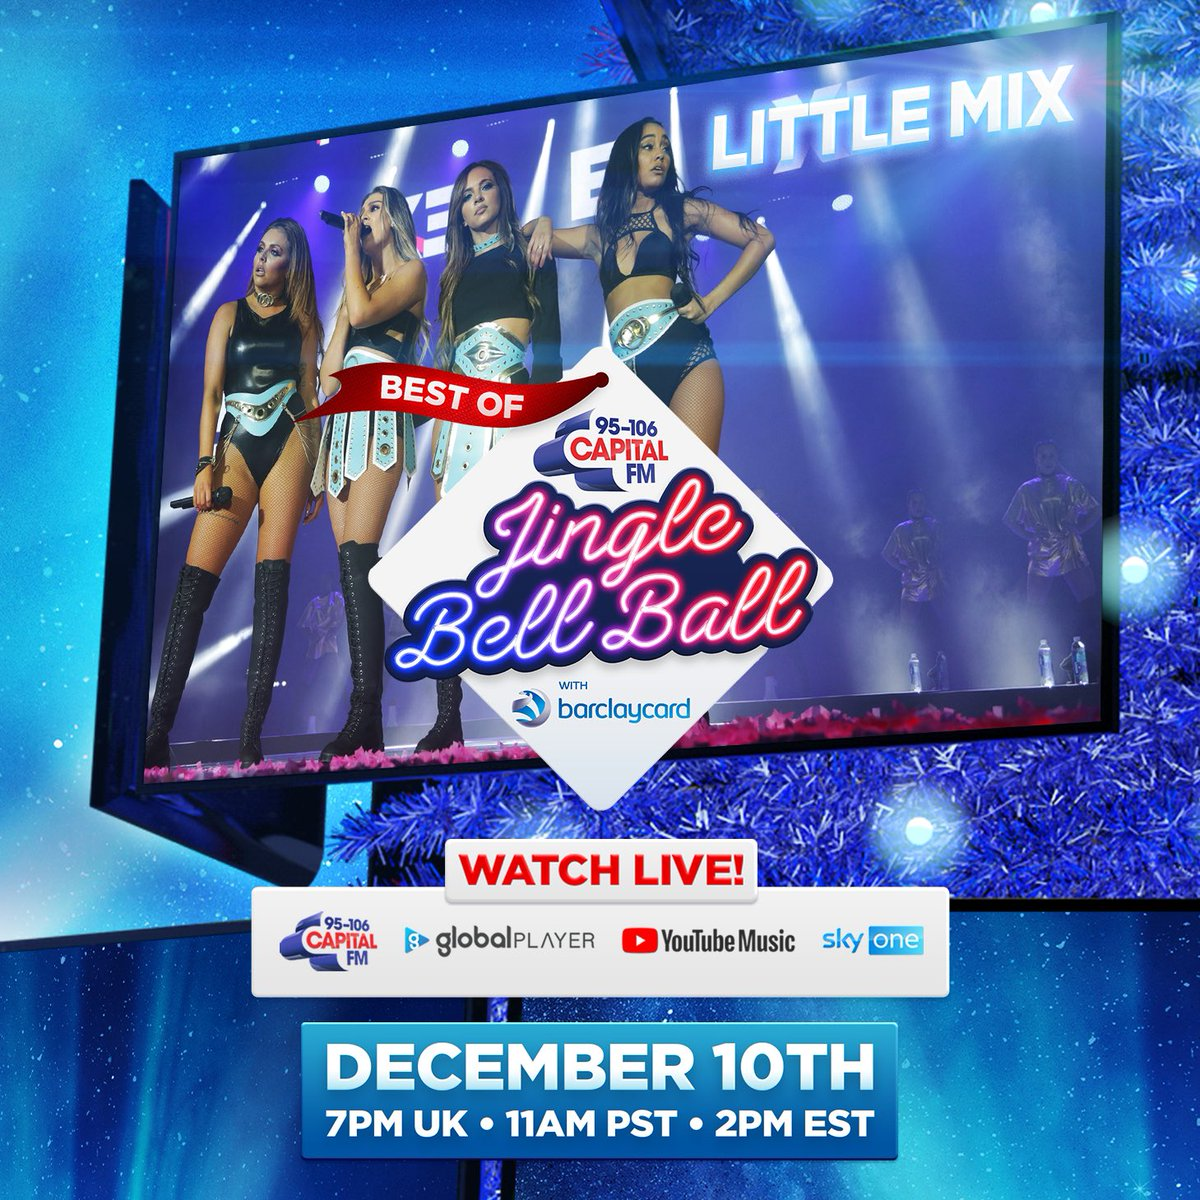 We'll be part of the #BestOfCapitalJBB this year 💗🔥. Make sure you're watching on 10th December - we can't wait!